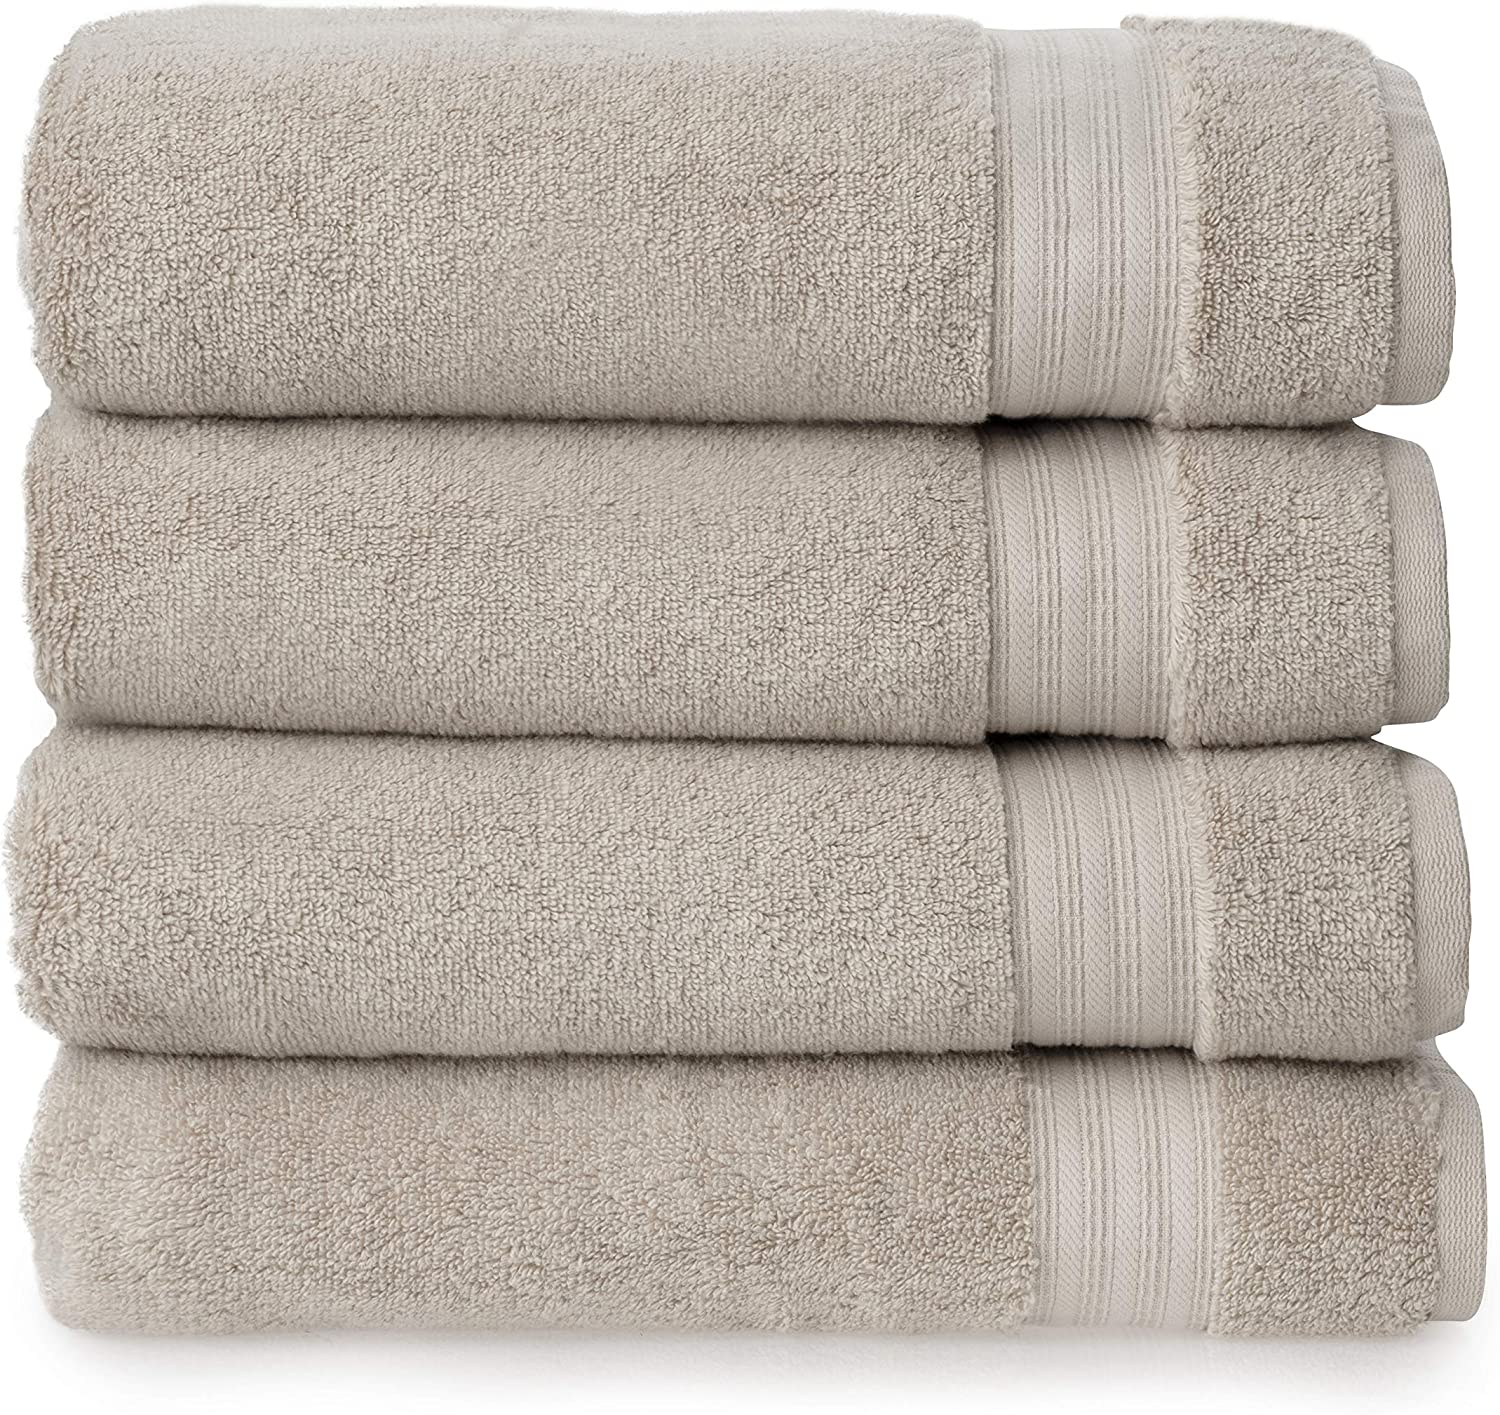 Welhome Cotton Rayon from Bamboo Towels (Flax Brown) - Set of 4 Bath Towels -Soft & Fluffy -Highly Absorbent -Fade Resistant - Durable - Machine Washable